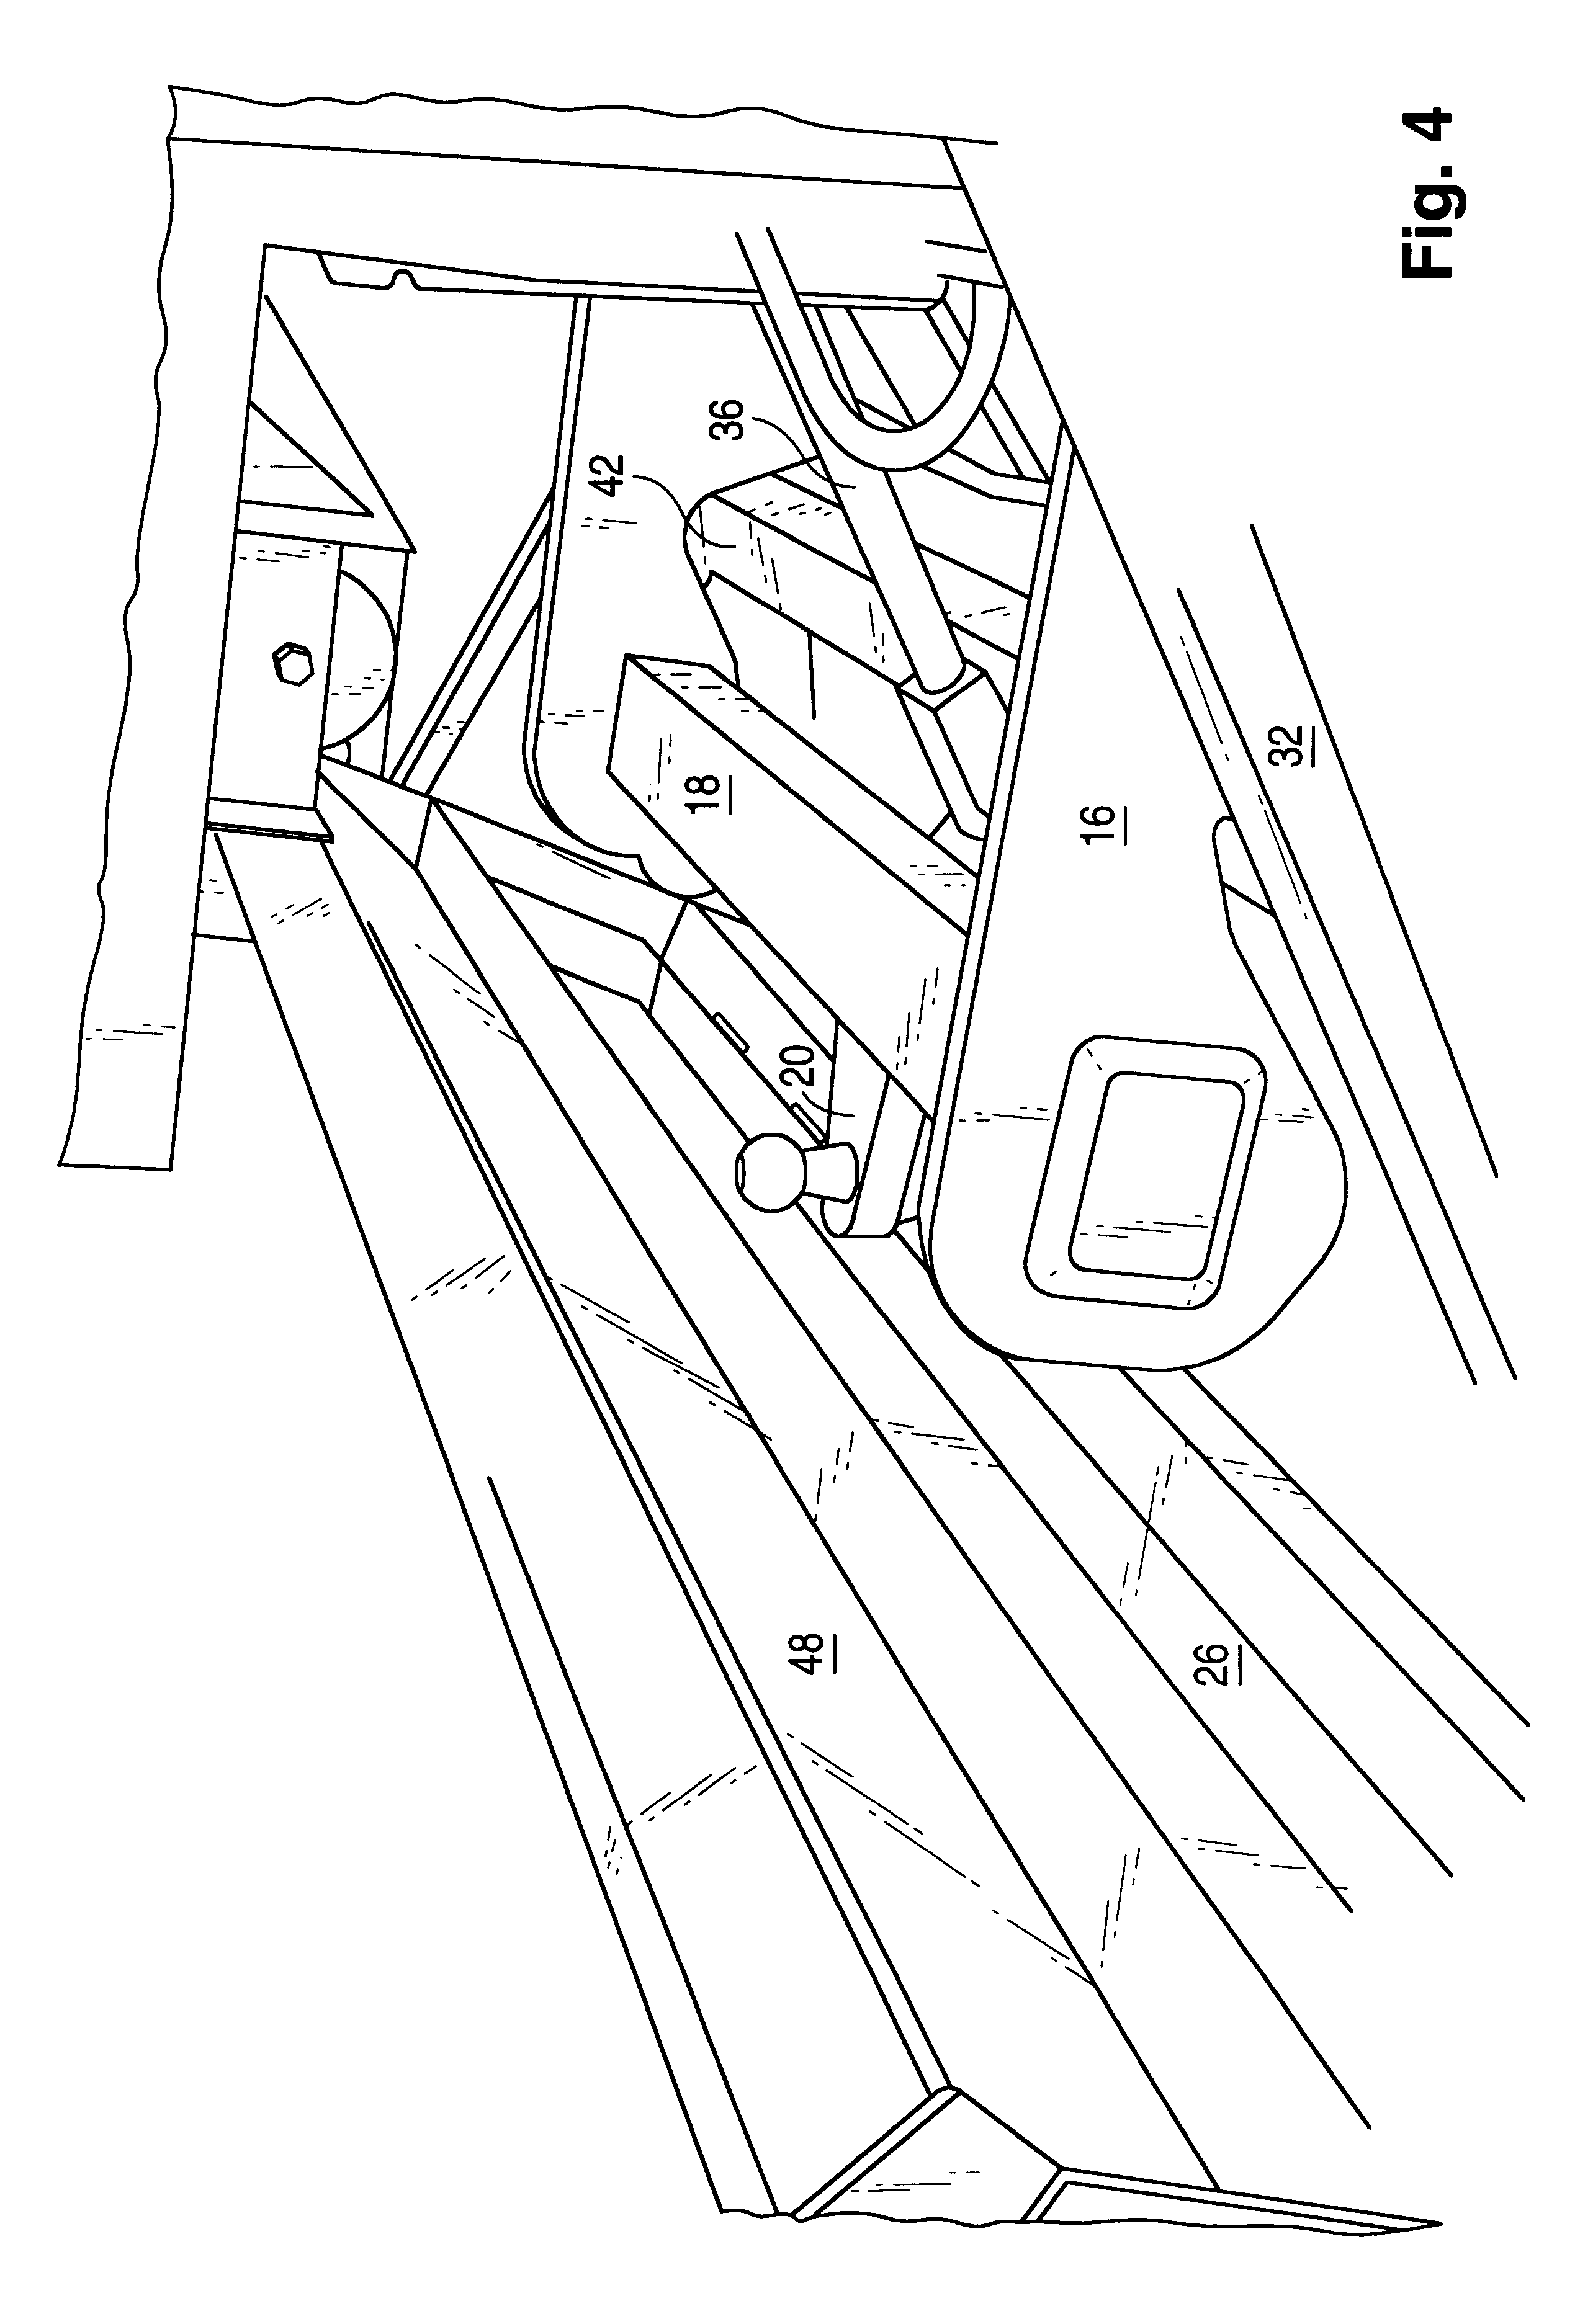 US06183187 20010206 D00004 patent us6183187 integrated lift and tow hitch google patents anthony liftgate wiring diagram at honlapkeszites.co